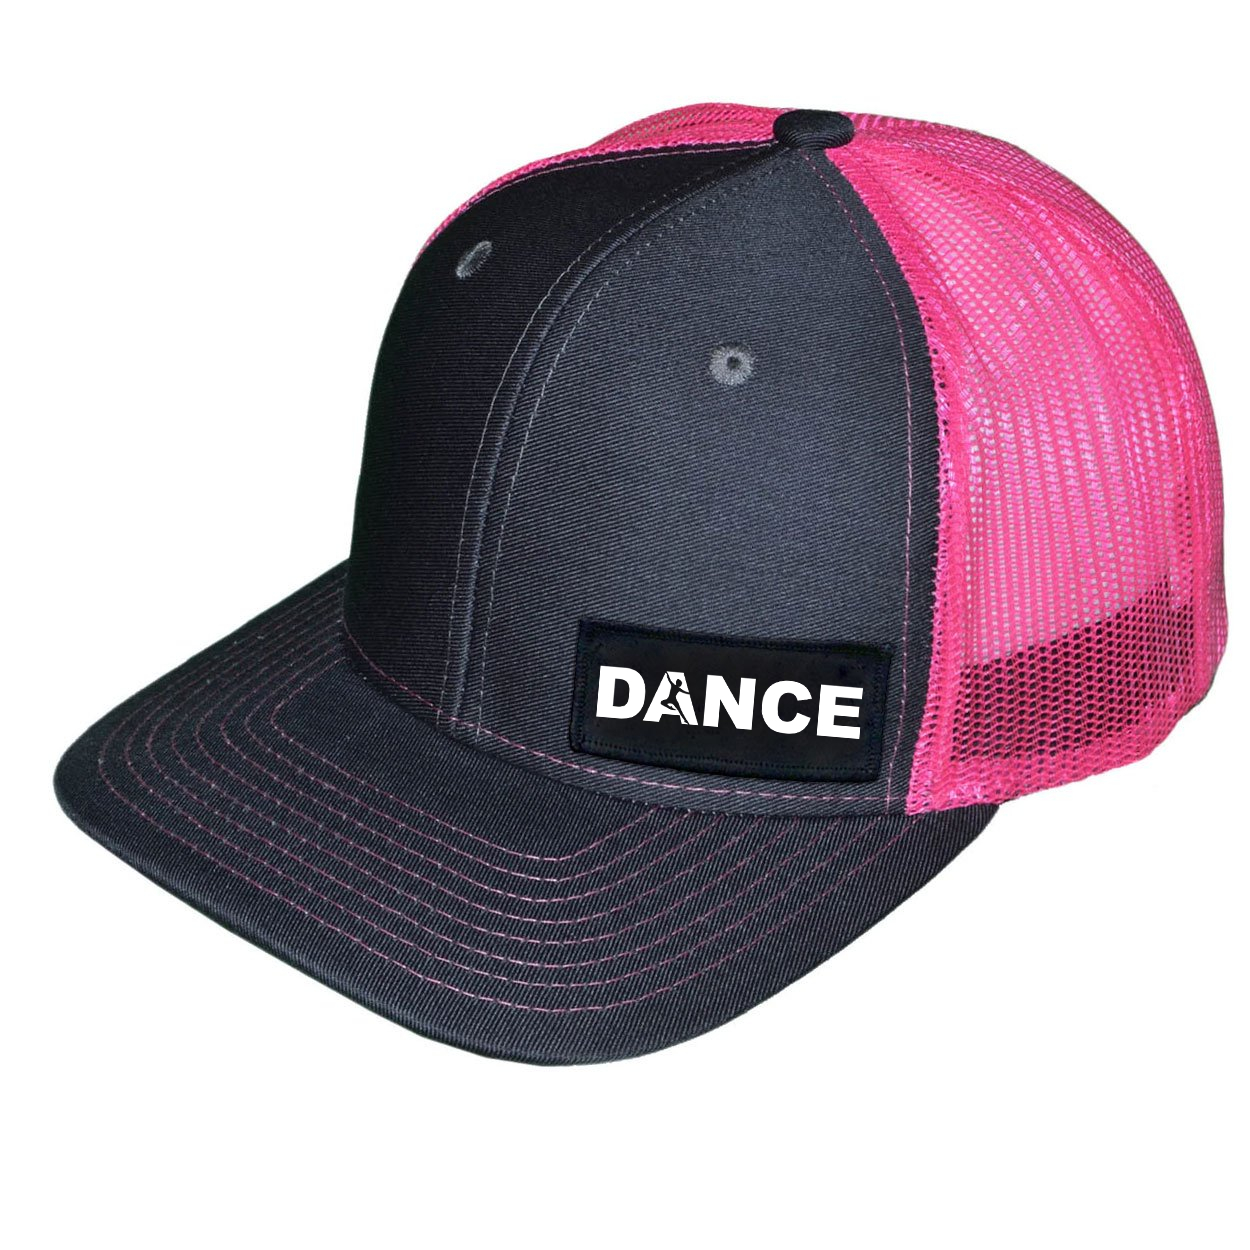 Dance Silhouette Logo Night Out Woven Patch Snapback Trucker Hat Dark Gray/Neon Pink (White Logo)